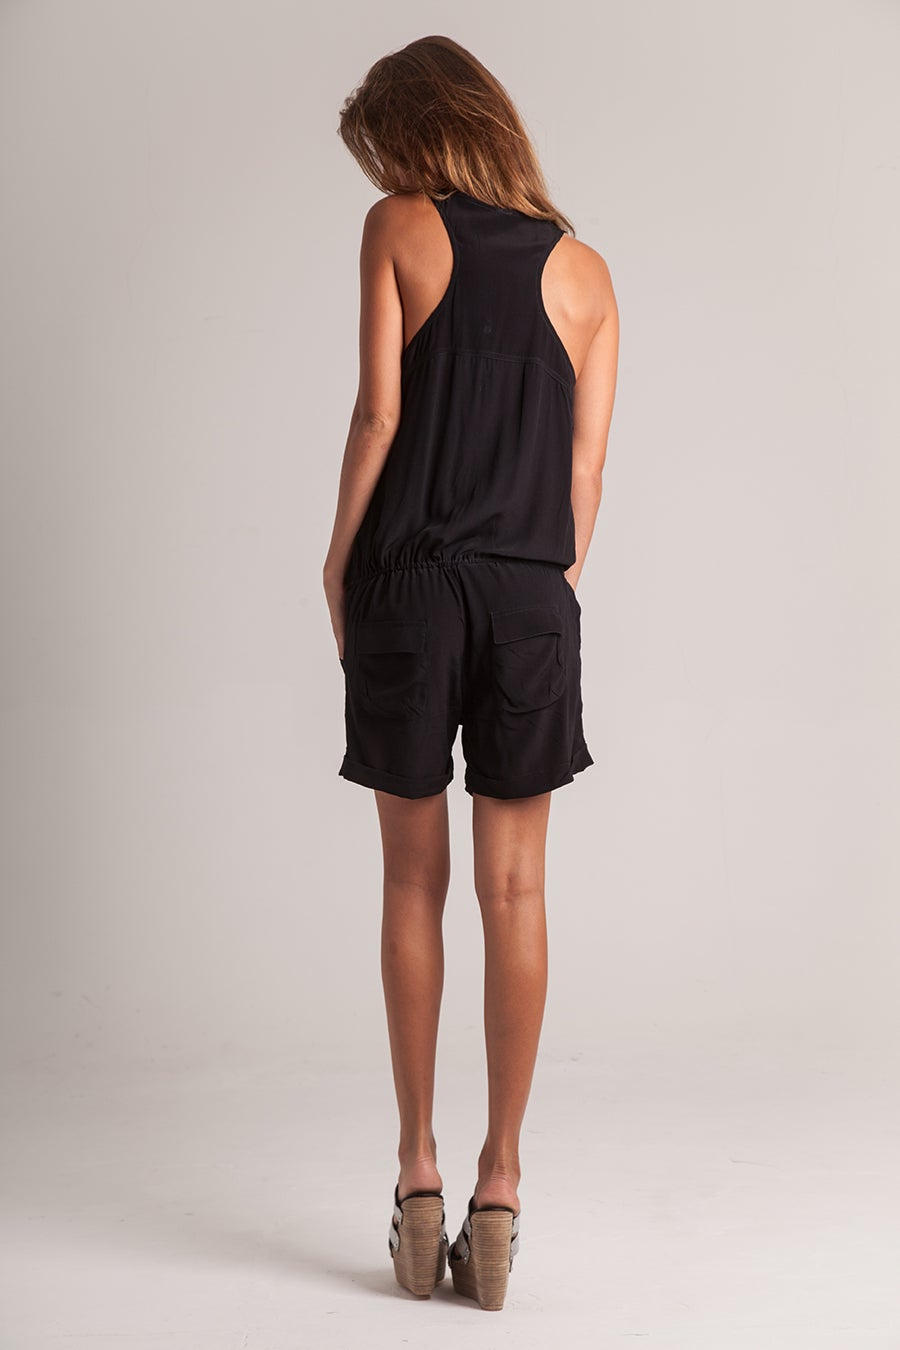 Image of *PRESALE* JASMIN PLAYSUIT - BLACK